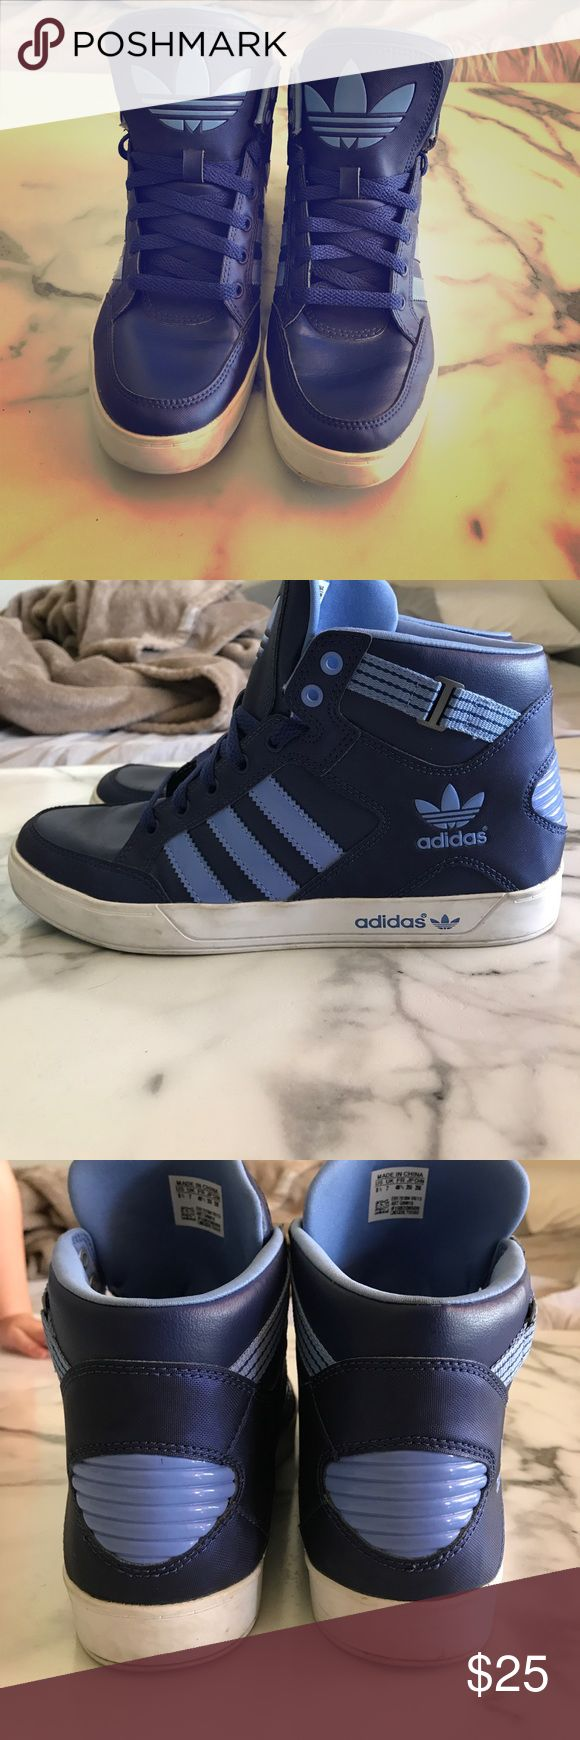 Women's adidas shoes 8.5 Women's adidas high tops color Navy blue with light blue. Size 8 1/2 very lightly worn. Made in China adidas Shoes Sneakers